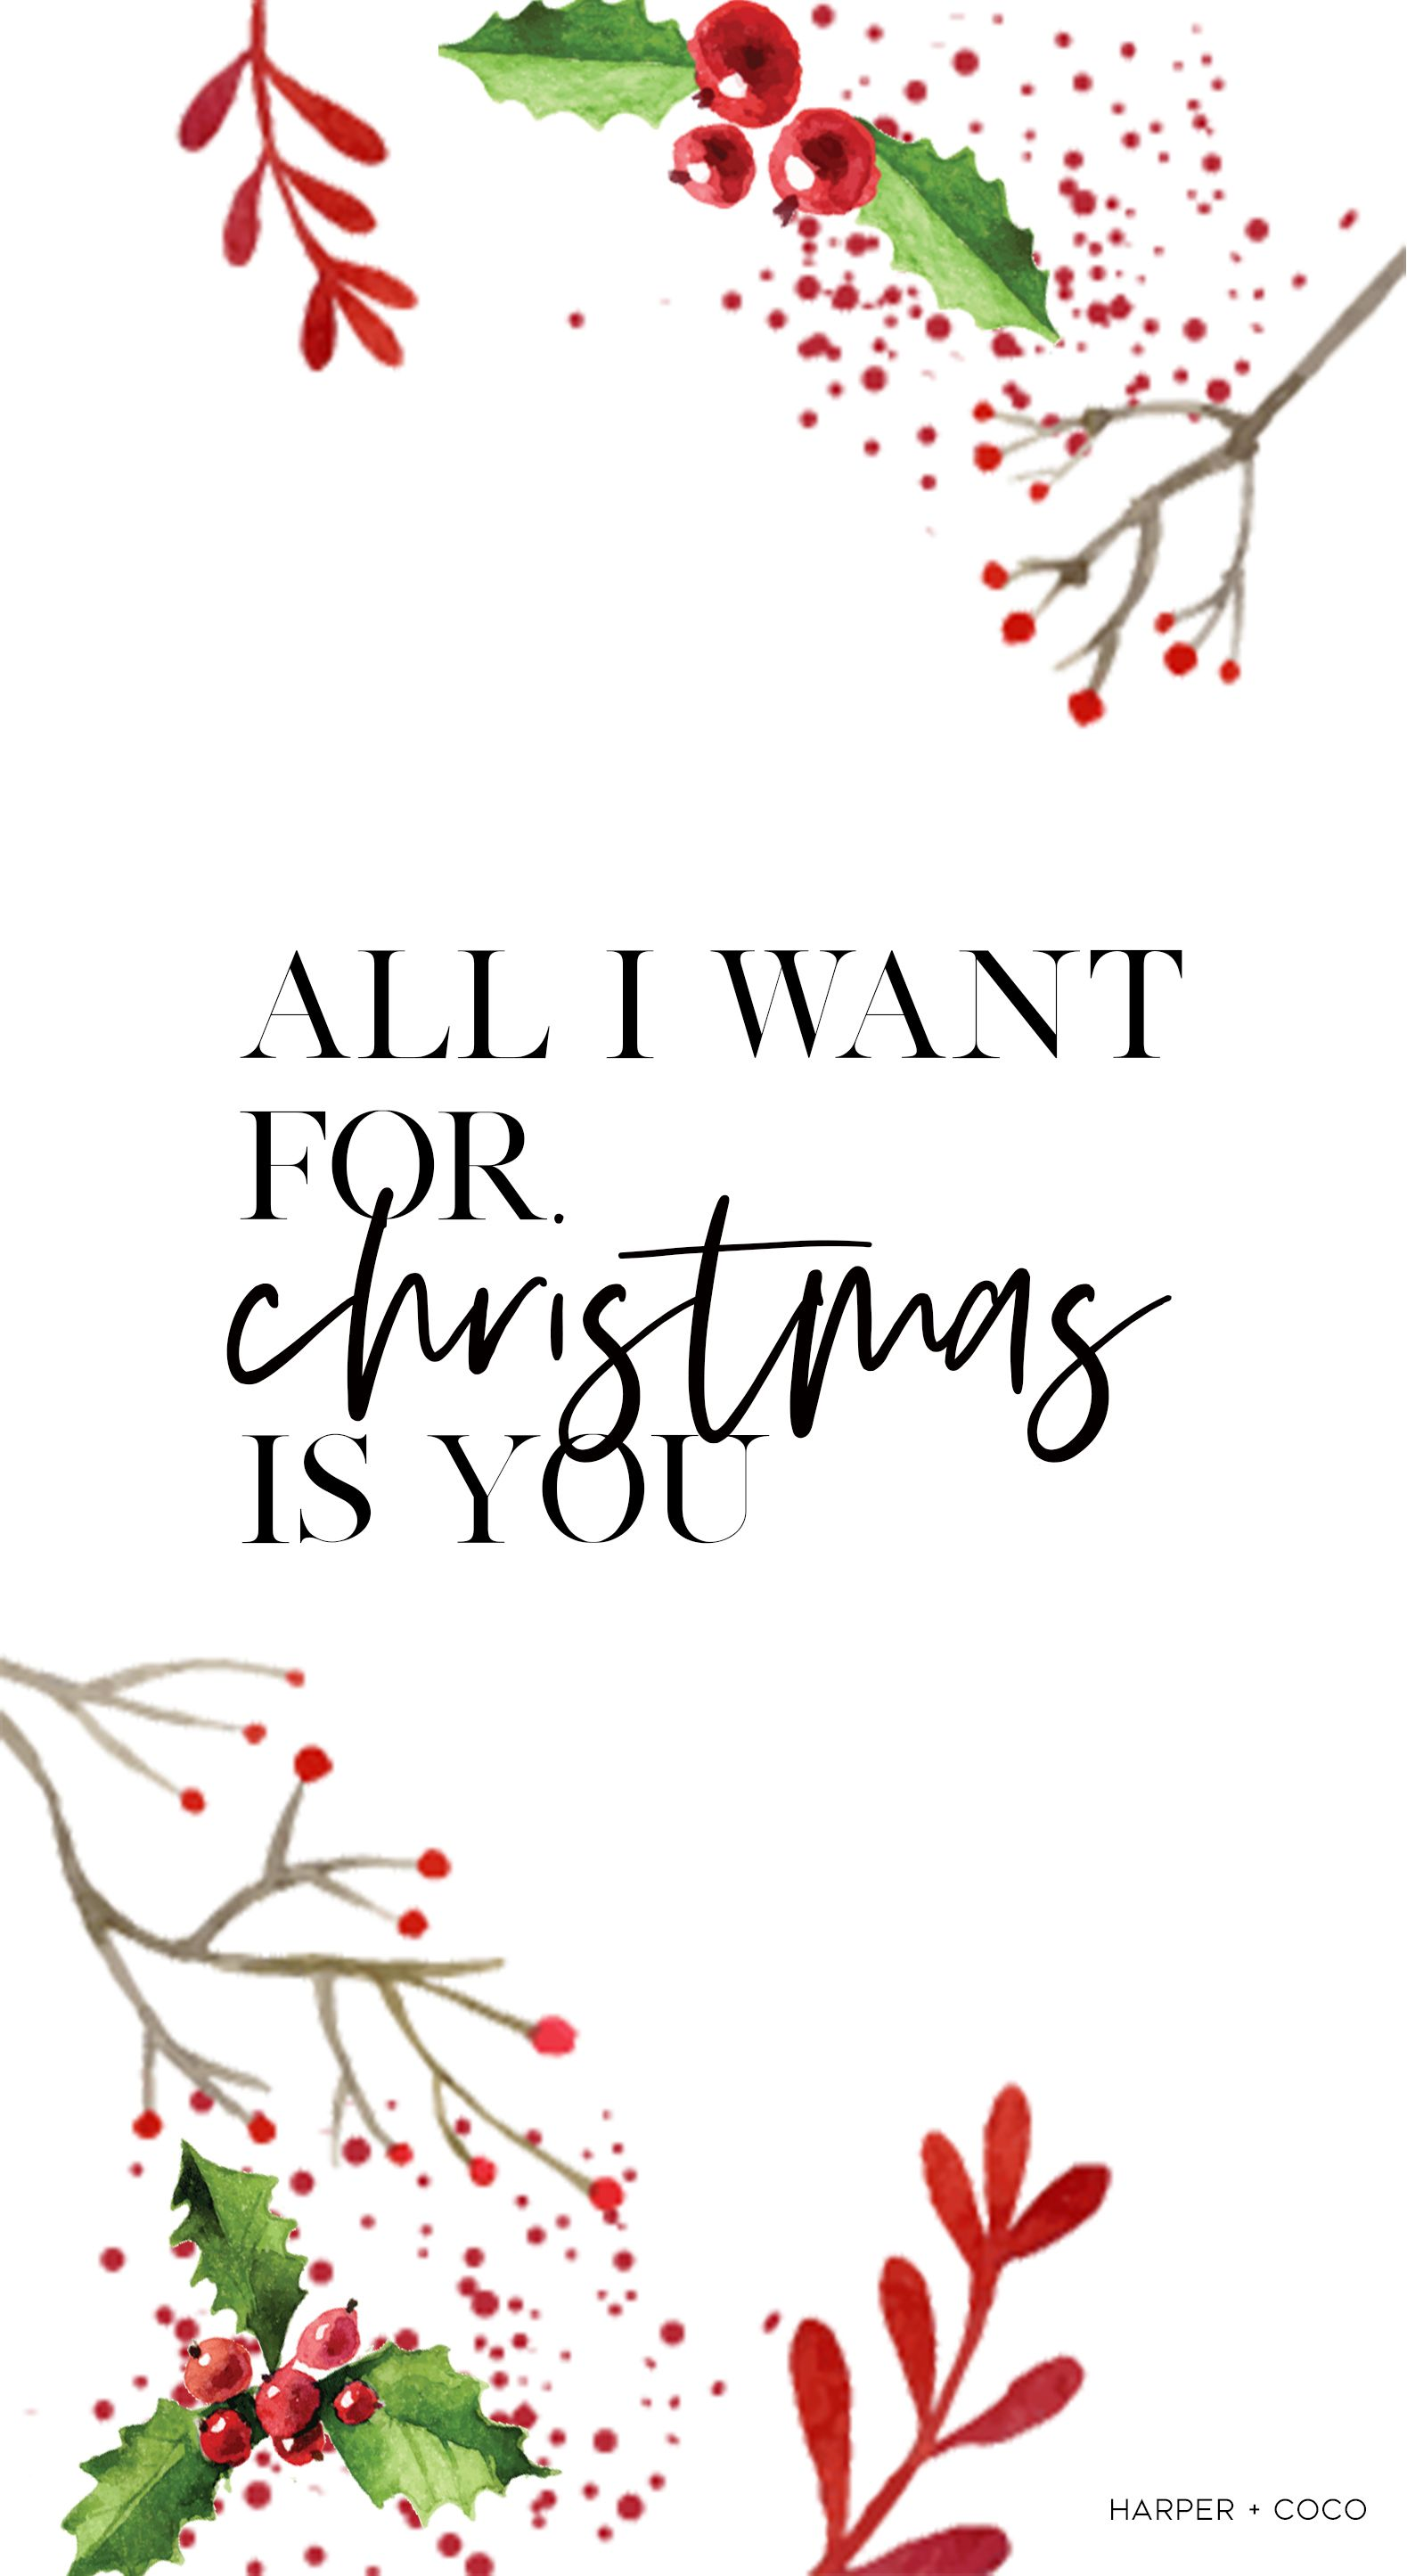 All I Want For Christmas Is You Christmas Wallpaper Redchristmas Christmasw Wallpaper Iphone Christmas Christmas Wallpaper Christmas Wallpaper Backgrounds